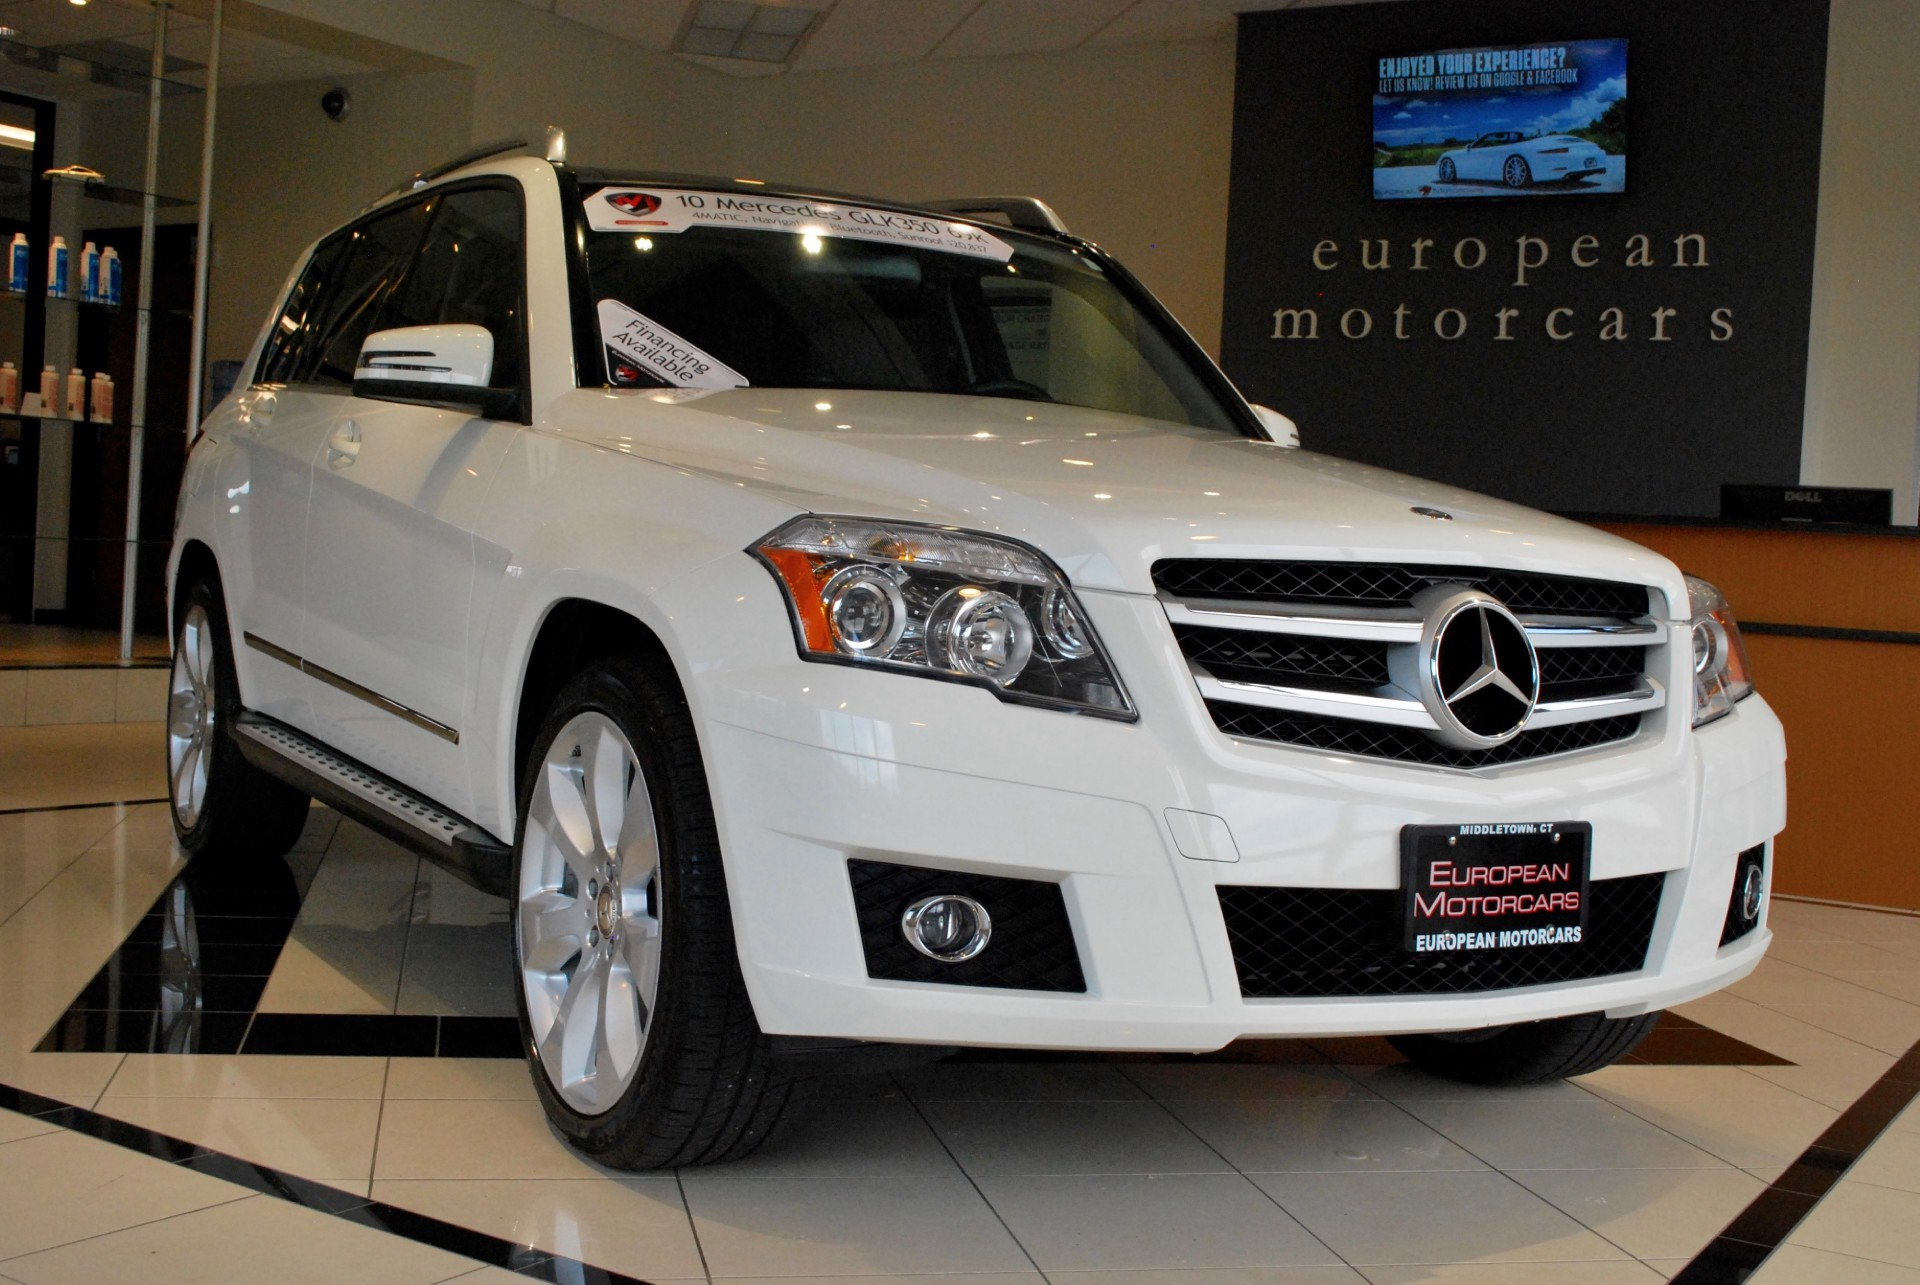 2010 mercedes benz glk glk350 4matic for sale near for 2010 mercedes benz glk350 for sale